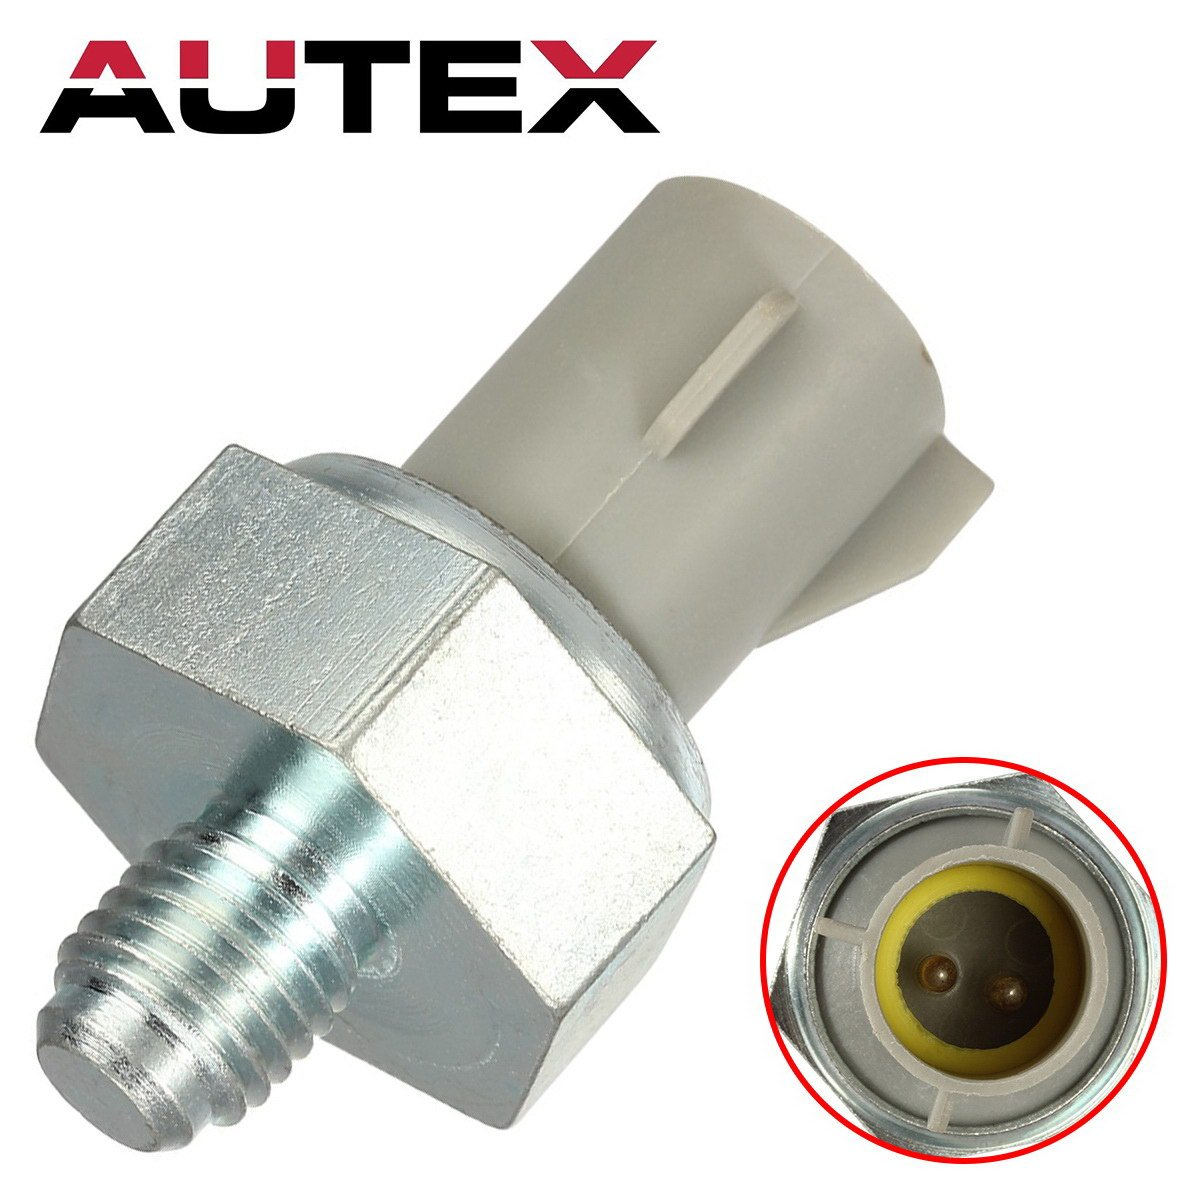 AUTEX 1pc Knock/Detonation Sensor 94DA-12A699-AA F3LY12A699A 2132284 compatible with 1997-1998 Ford E-150 E-250 F-150 1994-1995 Ford Thunderbird 1993-1995 Lincoln Mark Viii